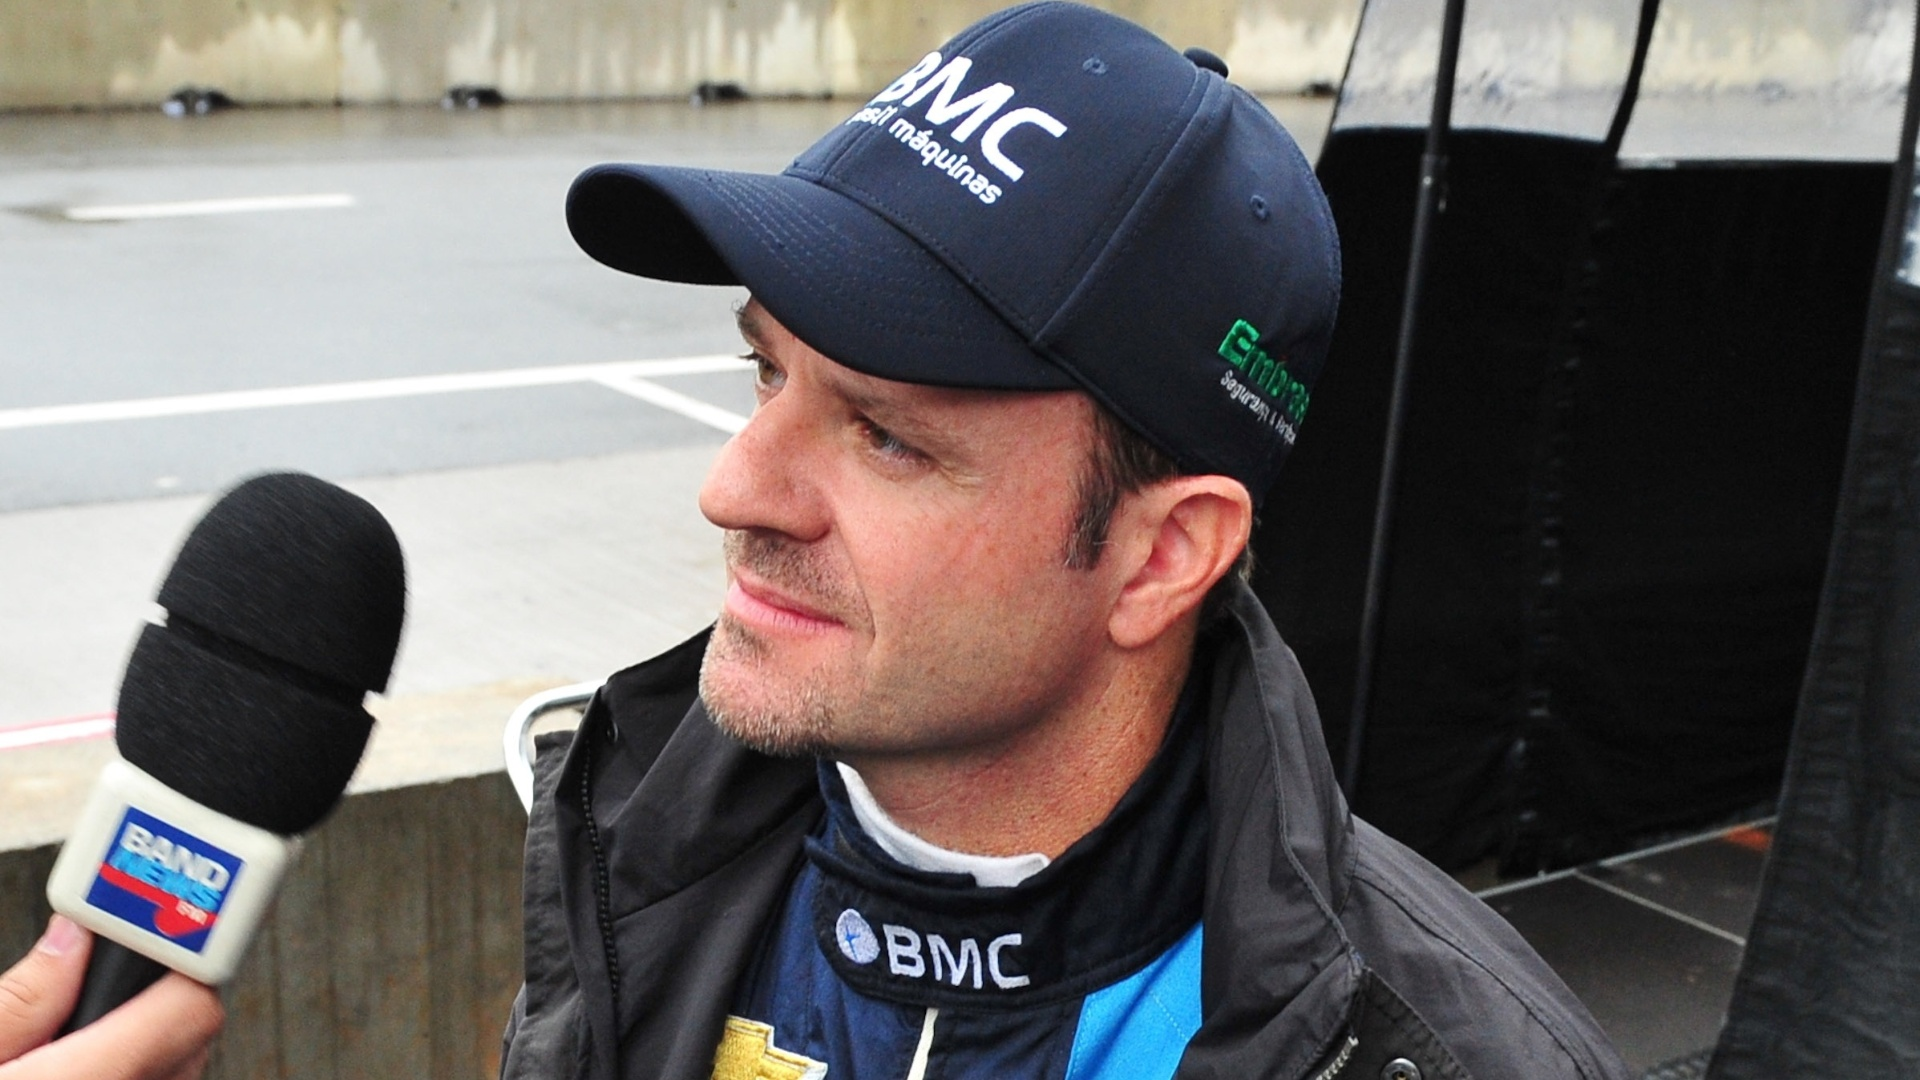 Rubens Barrichello, da equipe KV, d entrevista na manh de domingo, antes da prova